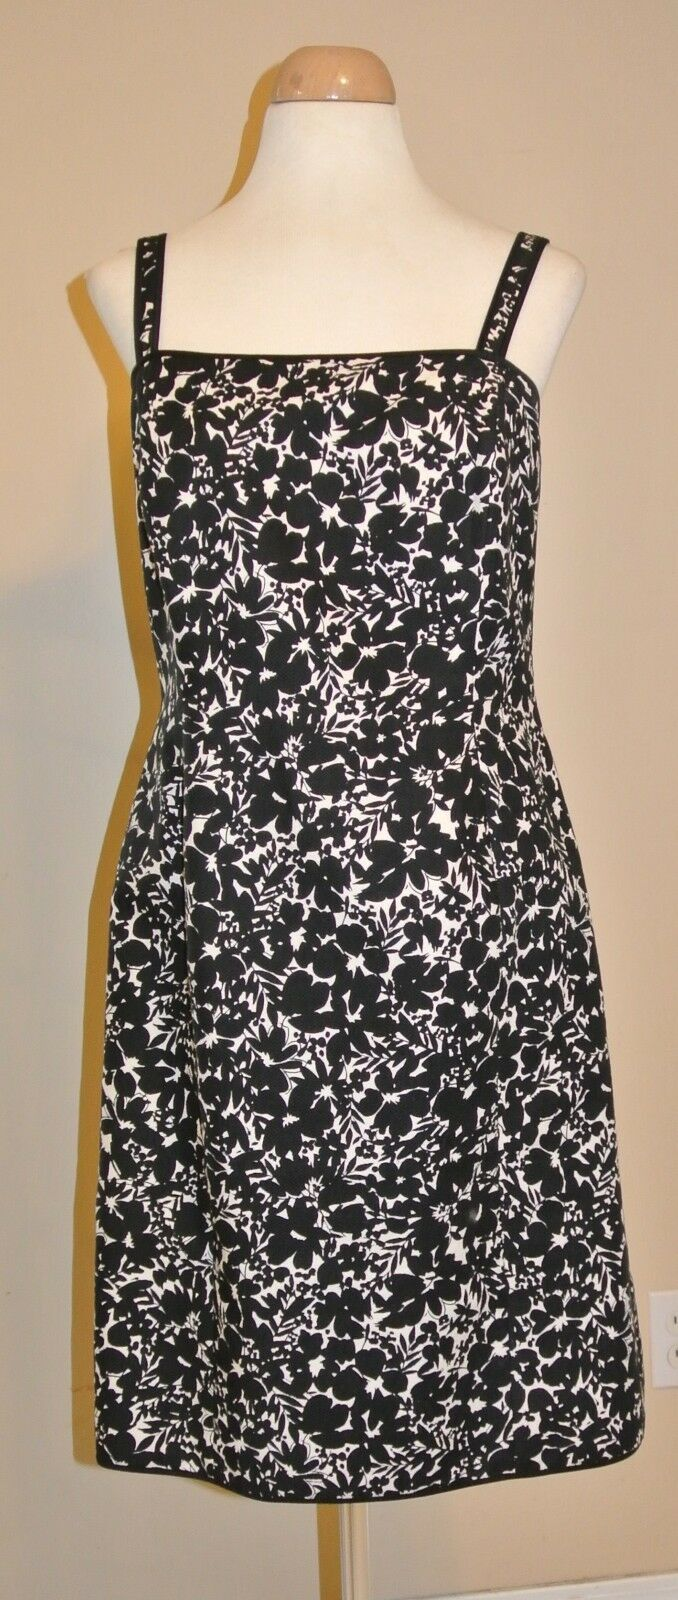 Ann Taylor Sleeveless Fitted Floral Evening Party Dress Size 8 Petite 8 P SALE